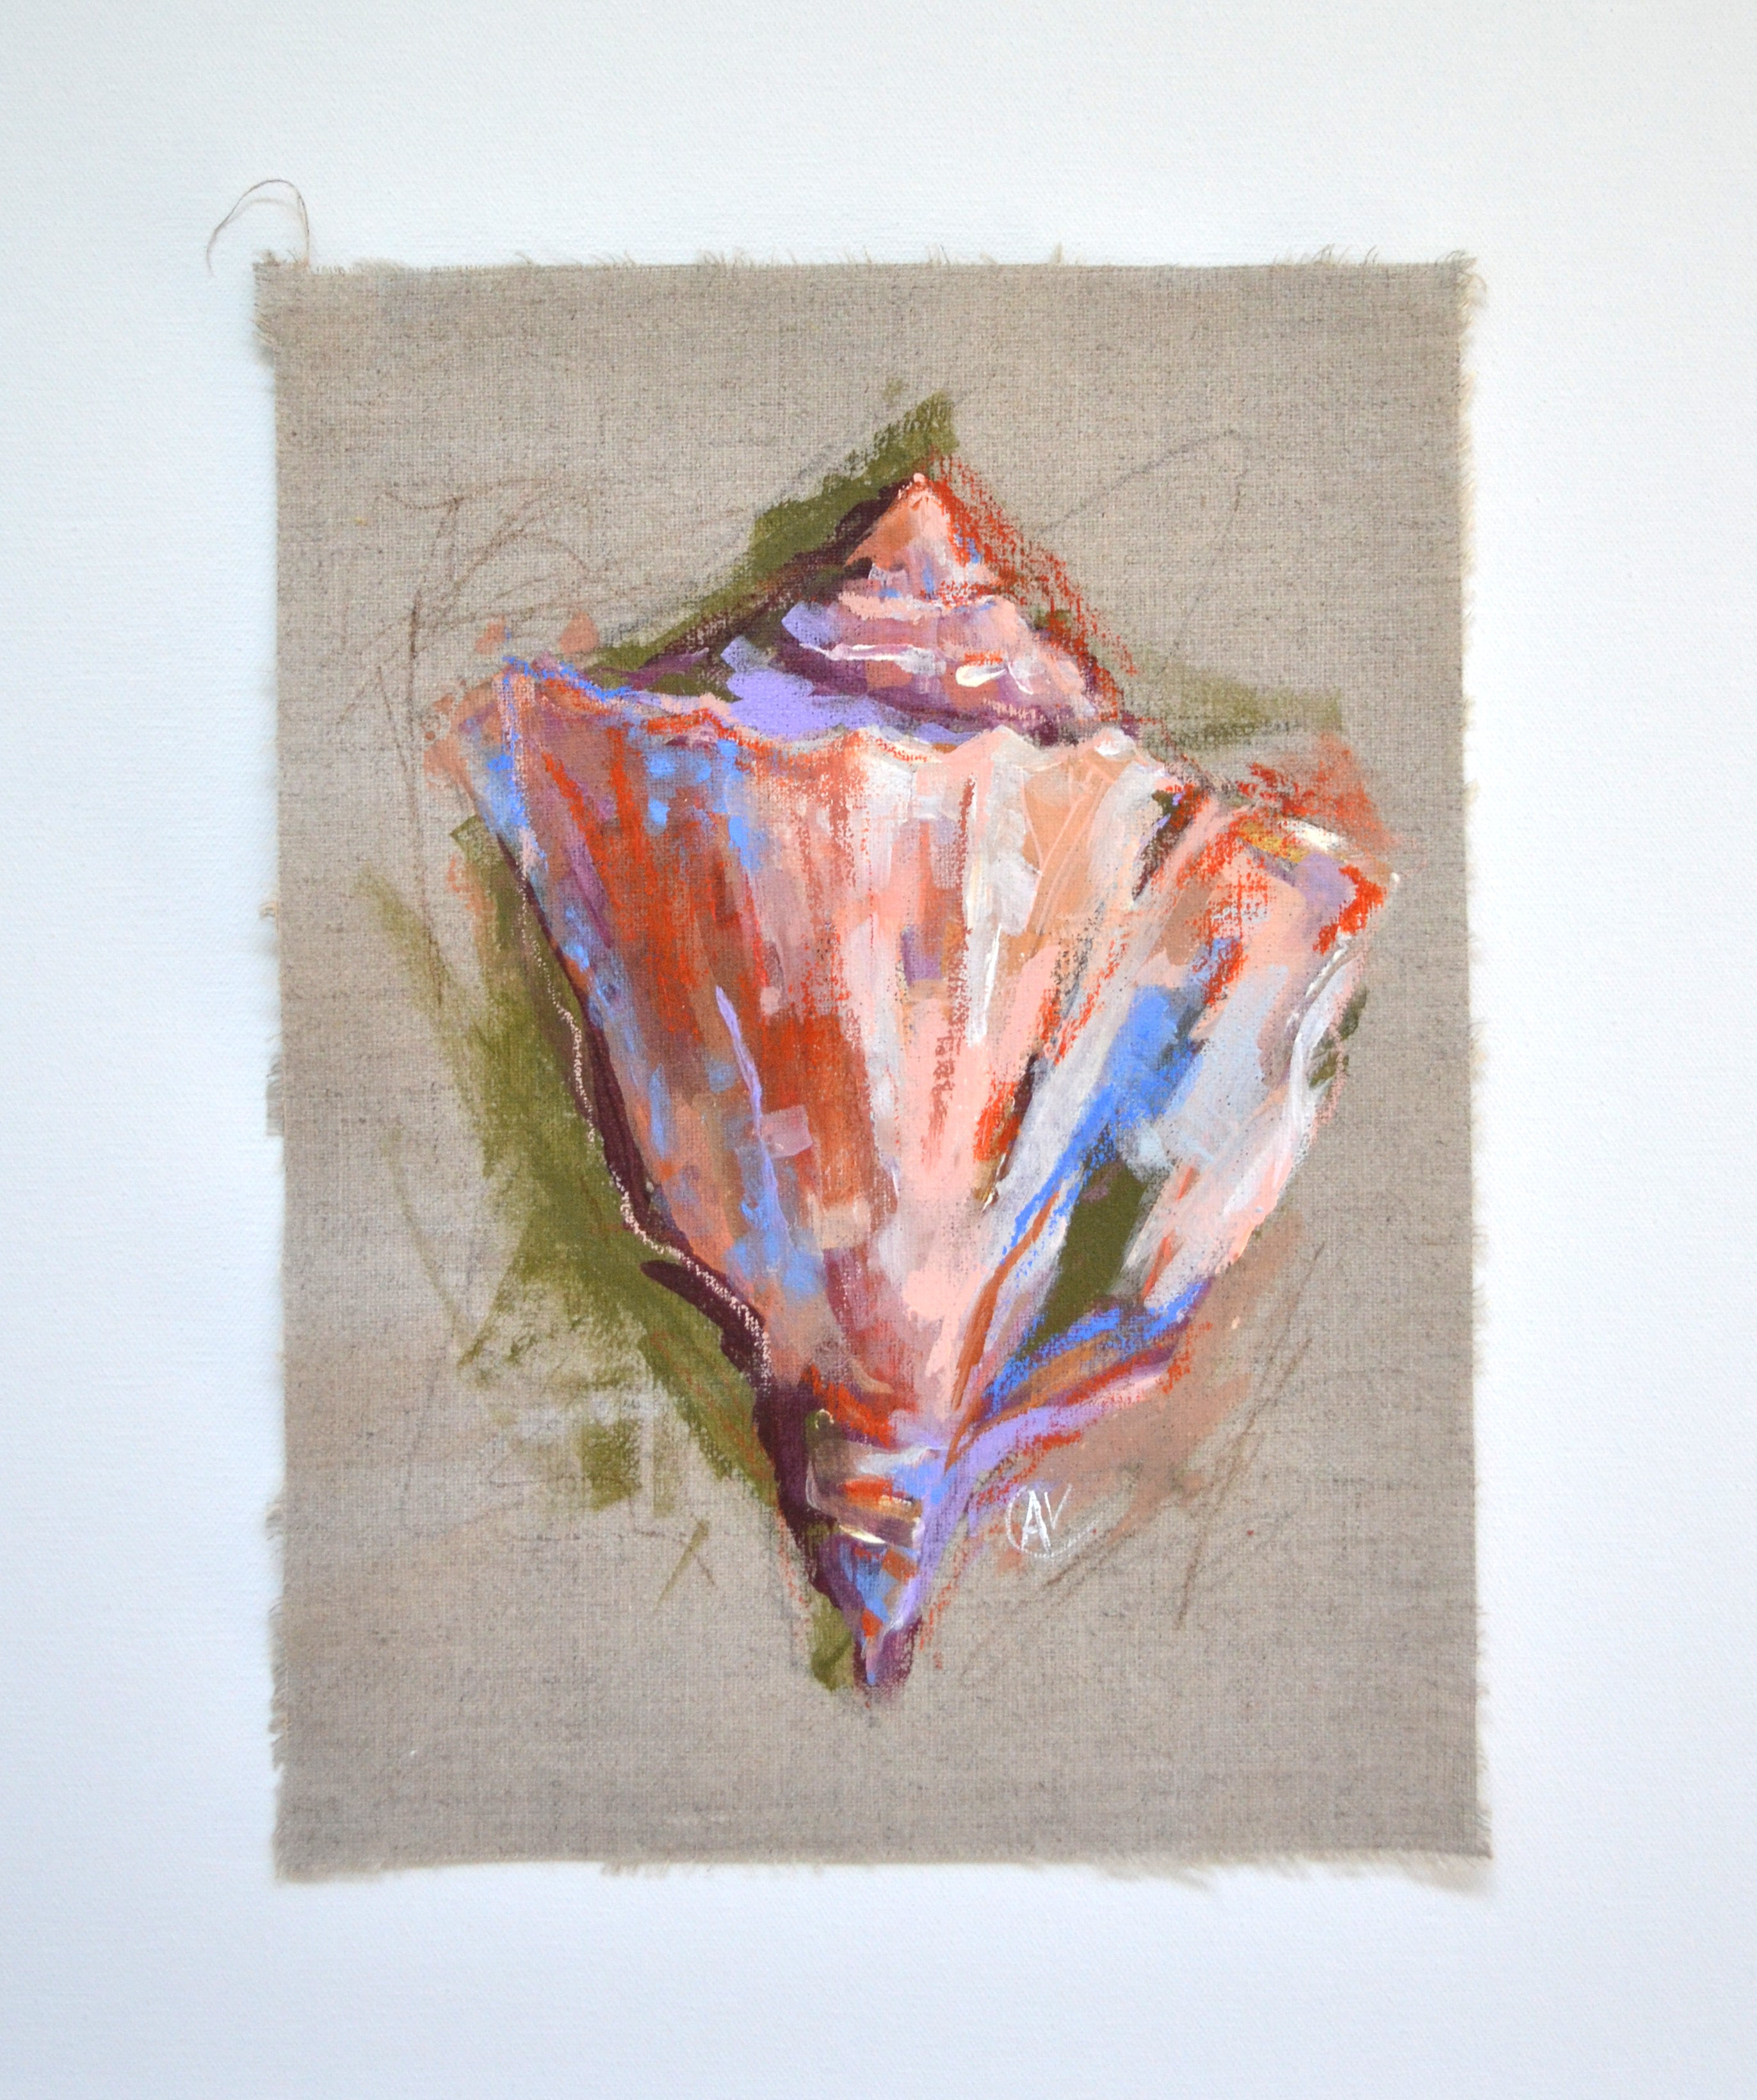 Seashell Study - Tiny Dancer